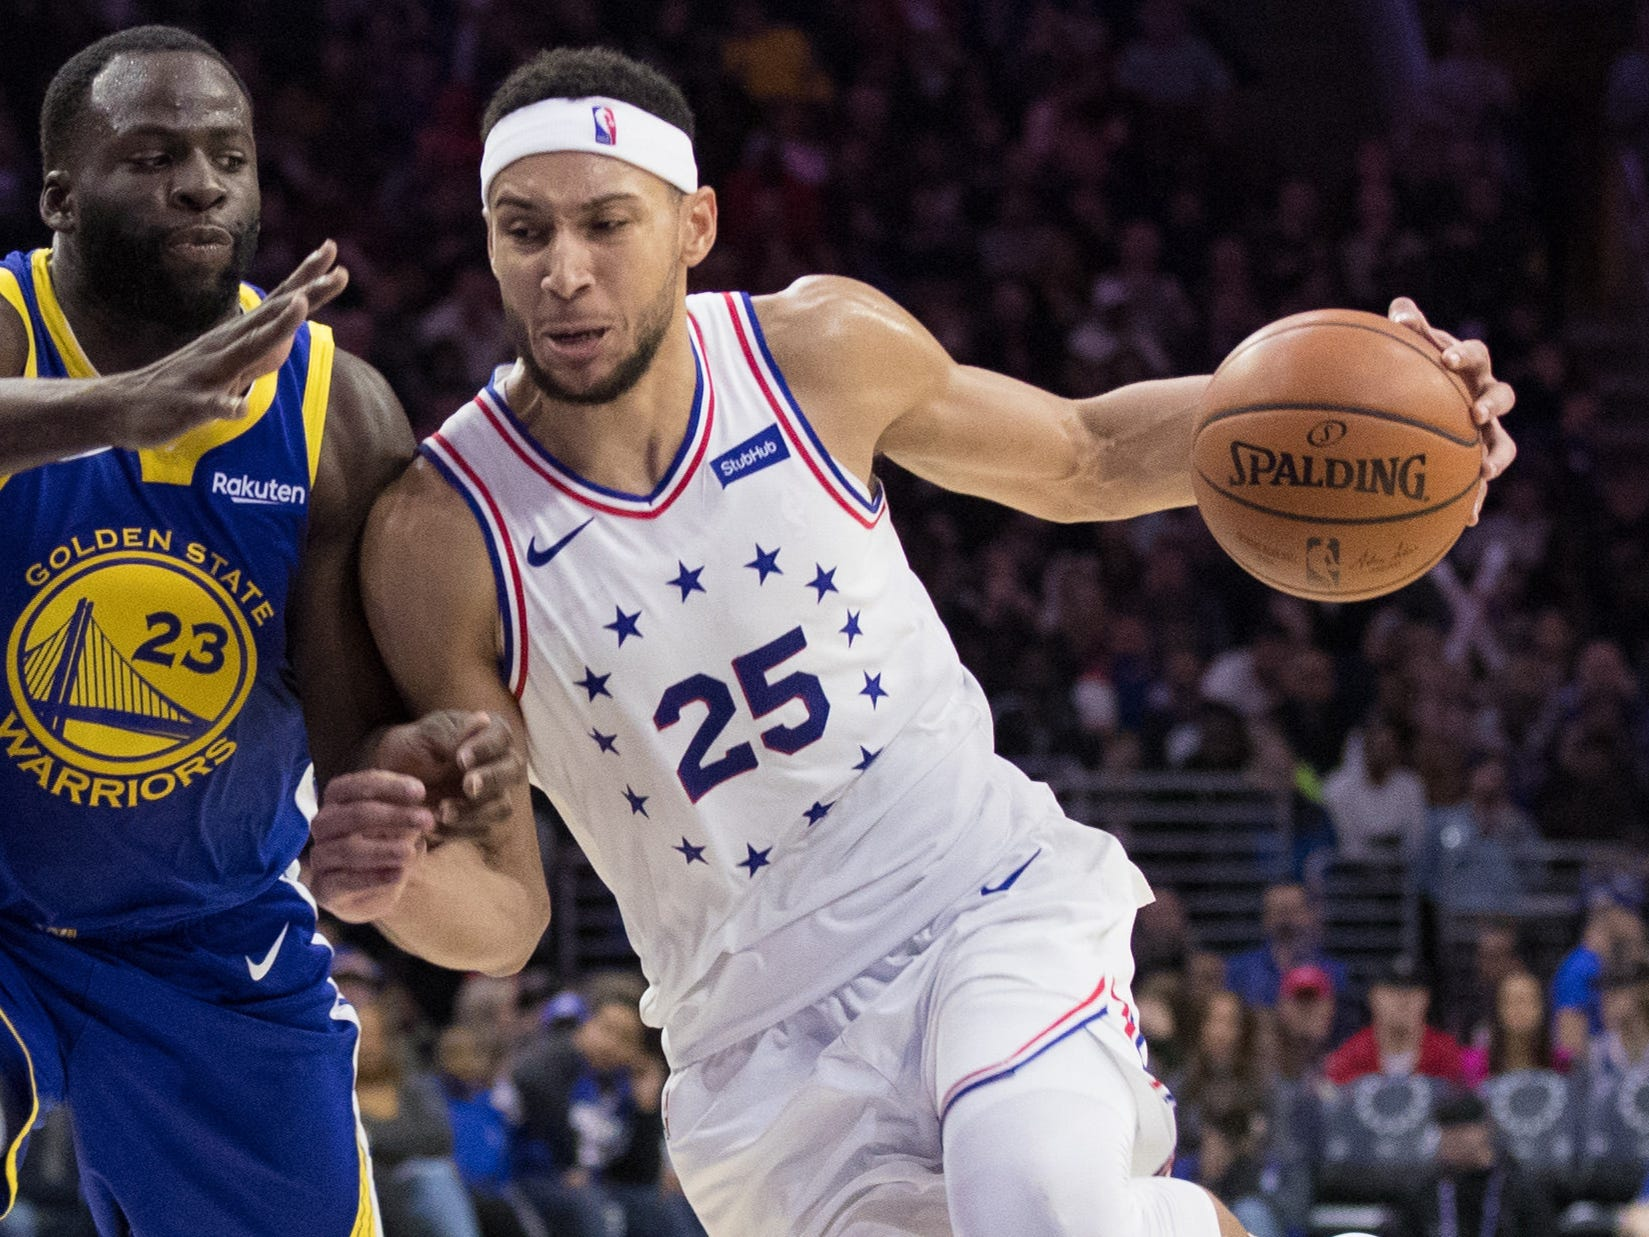 92. Ben Simmons, 76ers (March 2): 25 points, 15 rebounds, 11 assists in 120-117 loss to Warriors (10th of season).